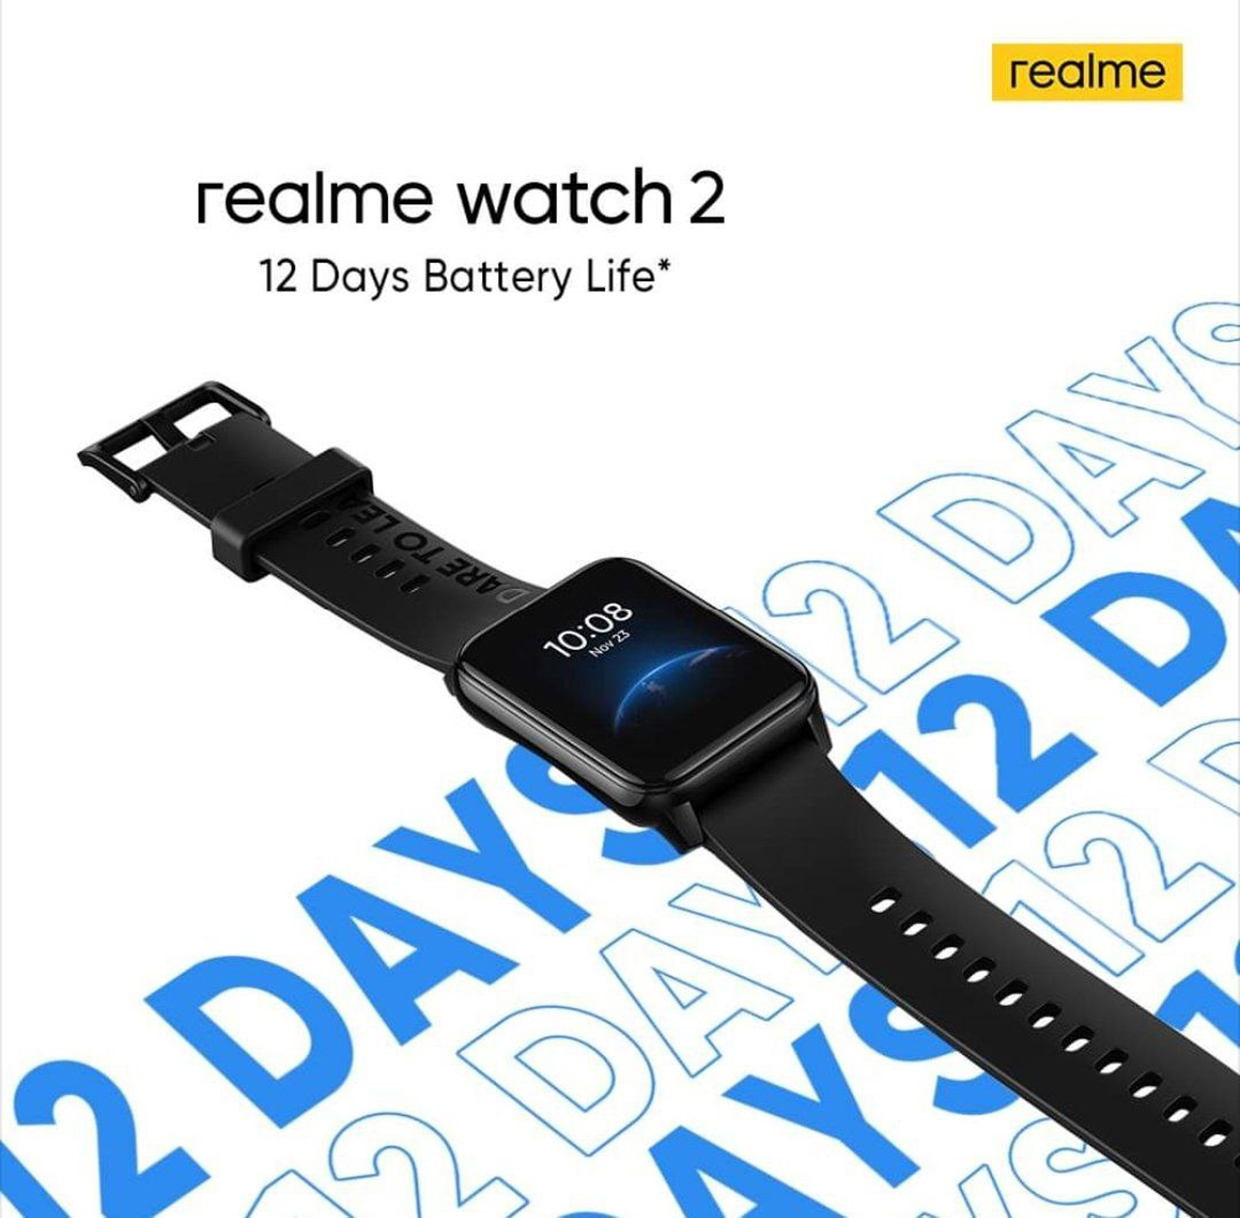 realme watch 2 features, realme watch 2, realme watch 2 introduction date